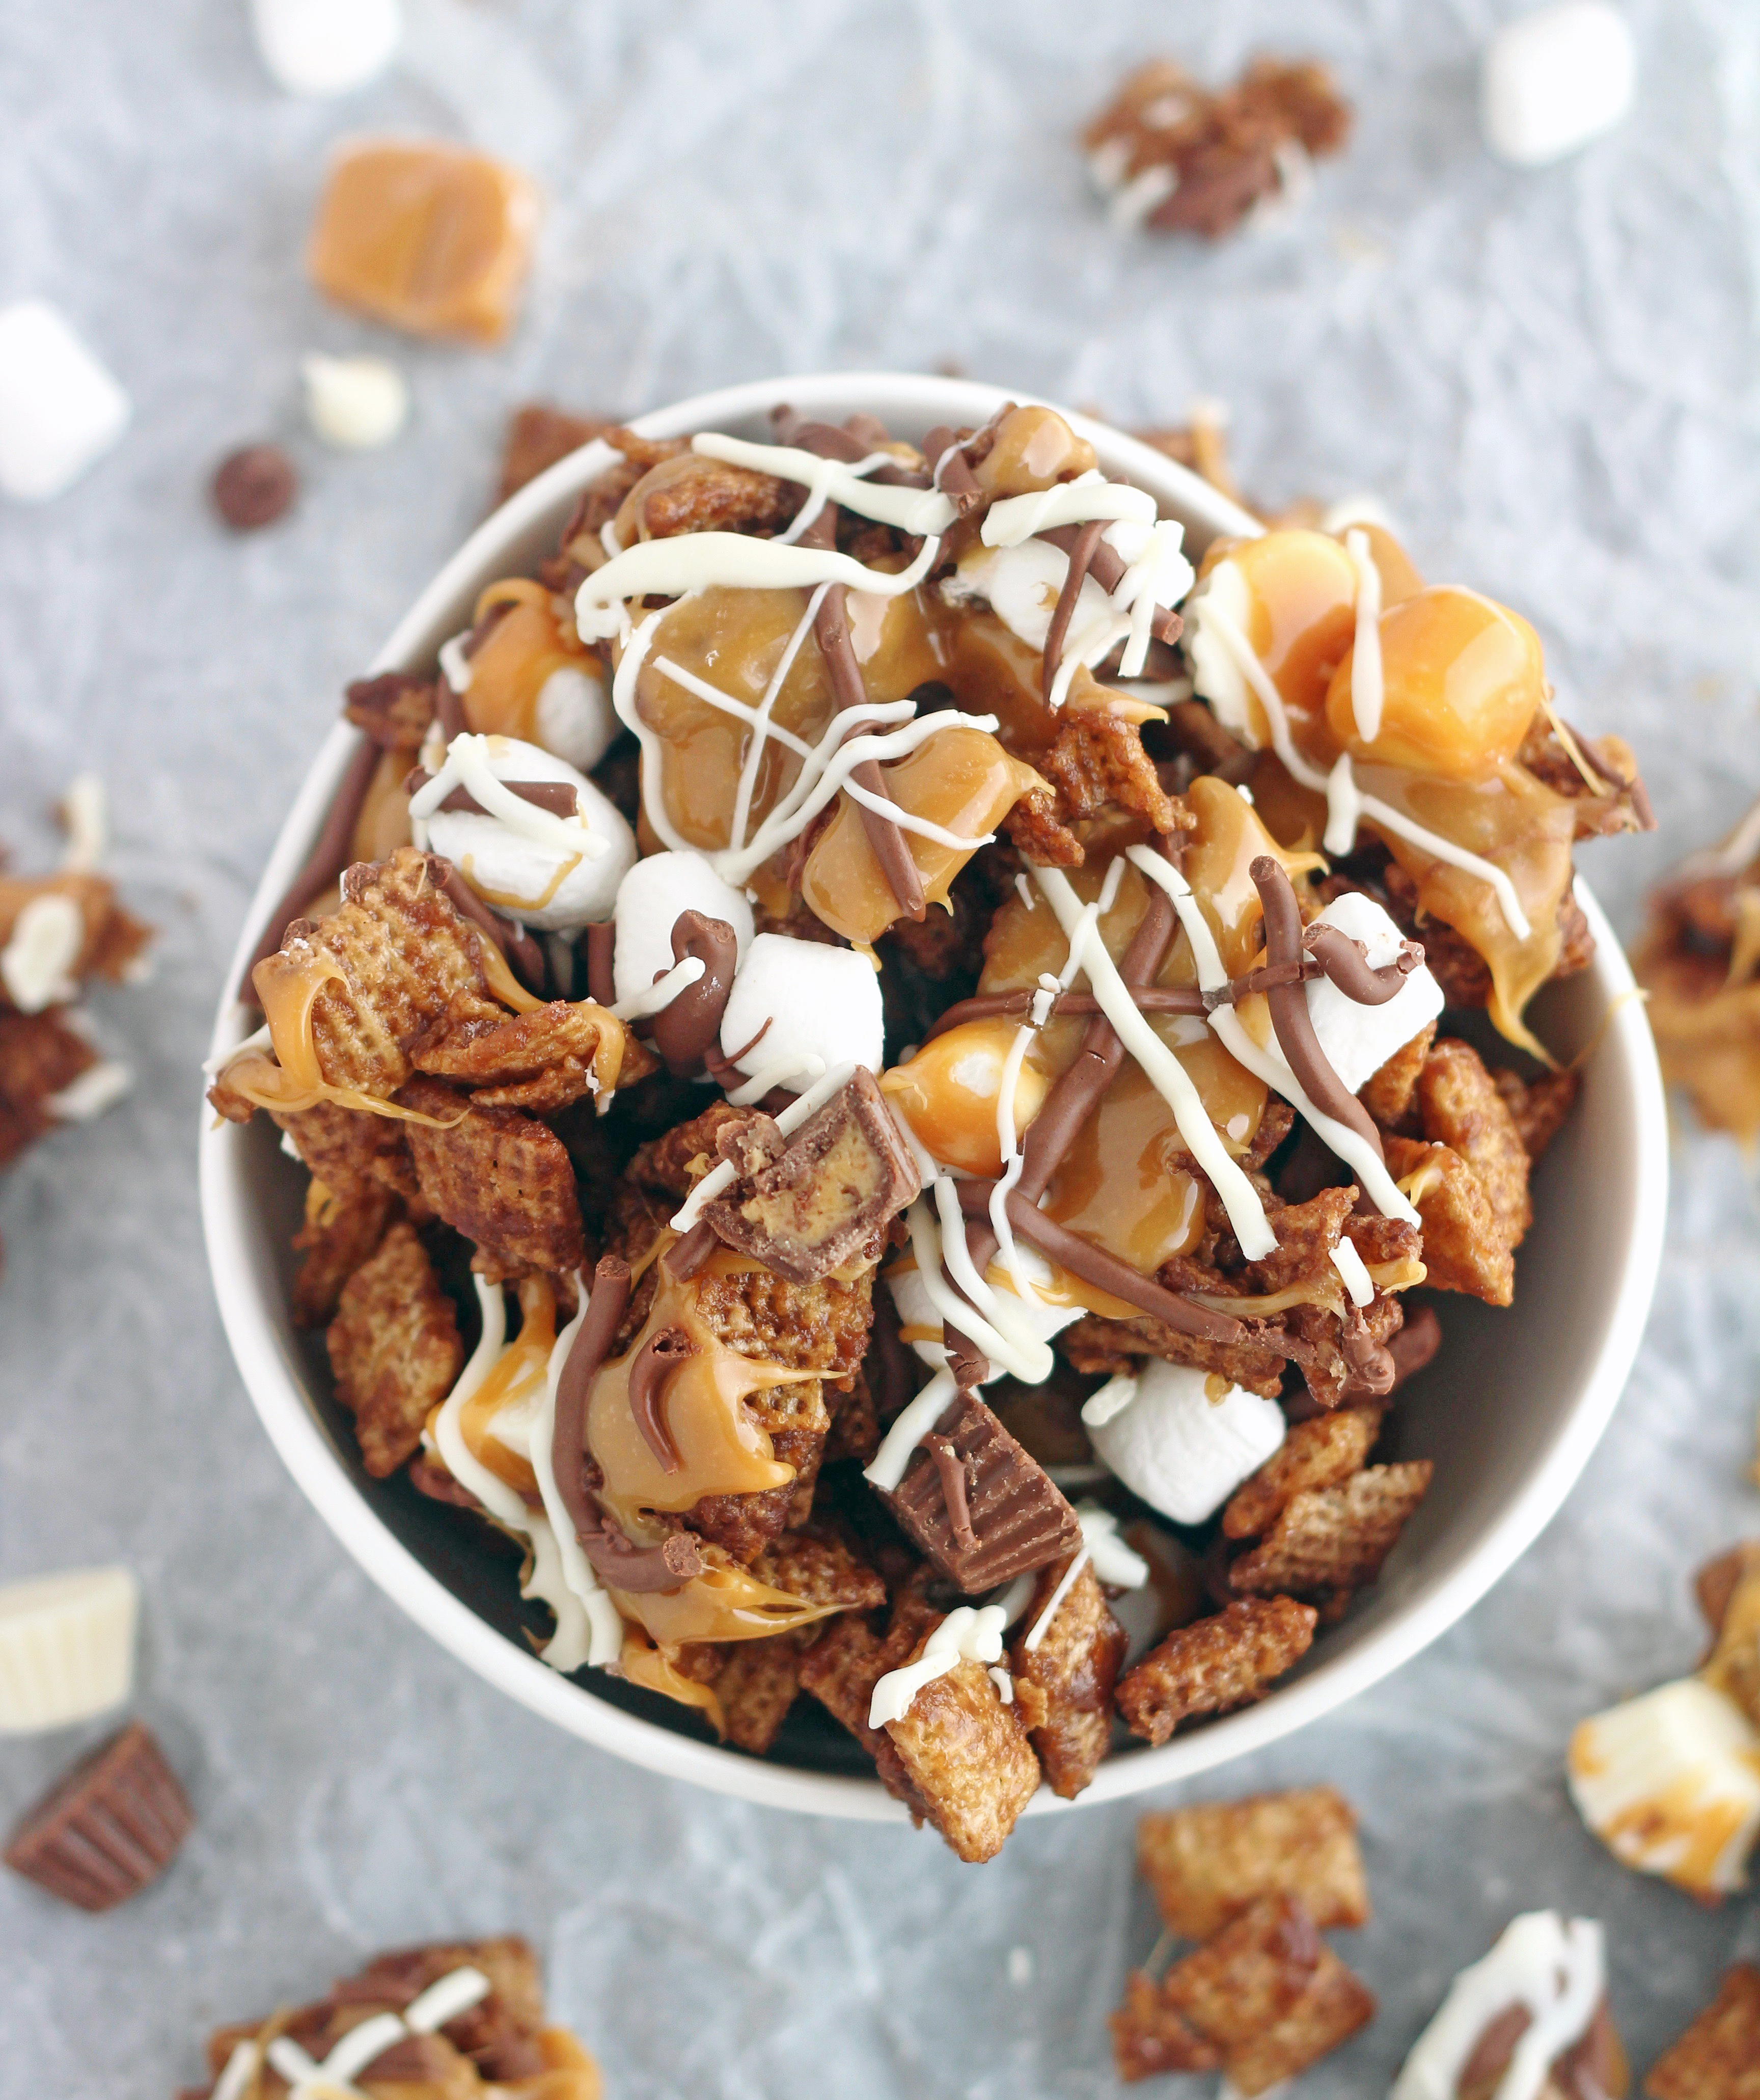 Bowl of Over The top Chex Mix